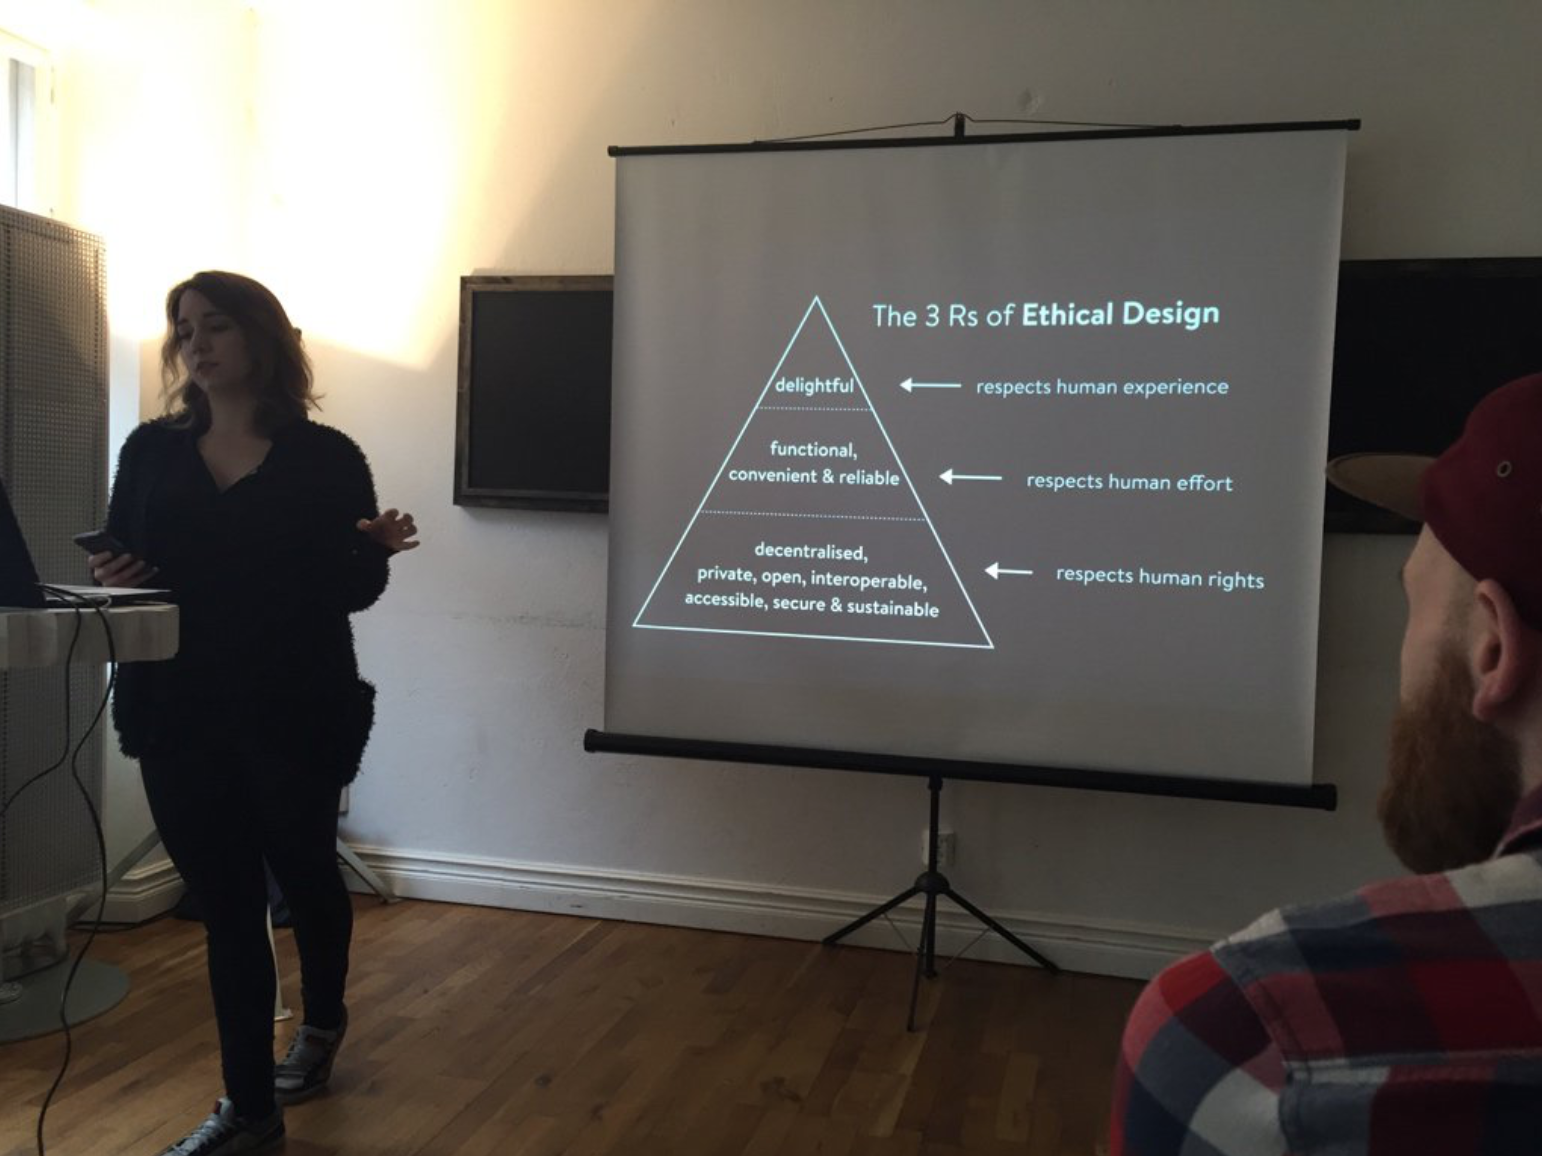 Me talking with a slide of the Ethical Design Manifesto (The 3 Rs of Ethical Design) in a fluffy black cardigan